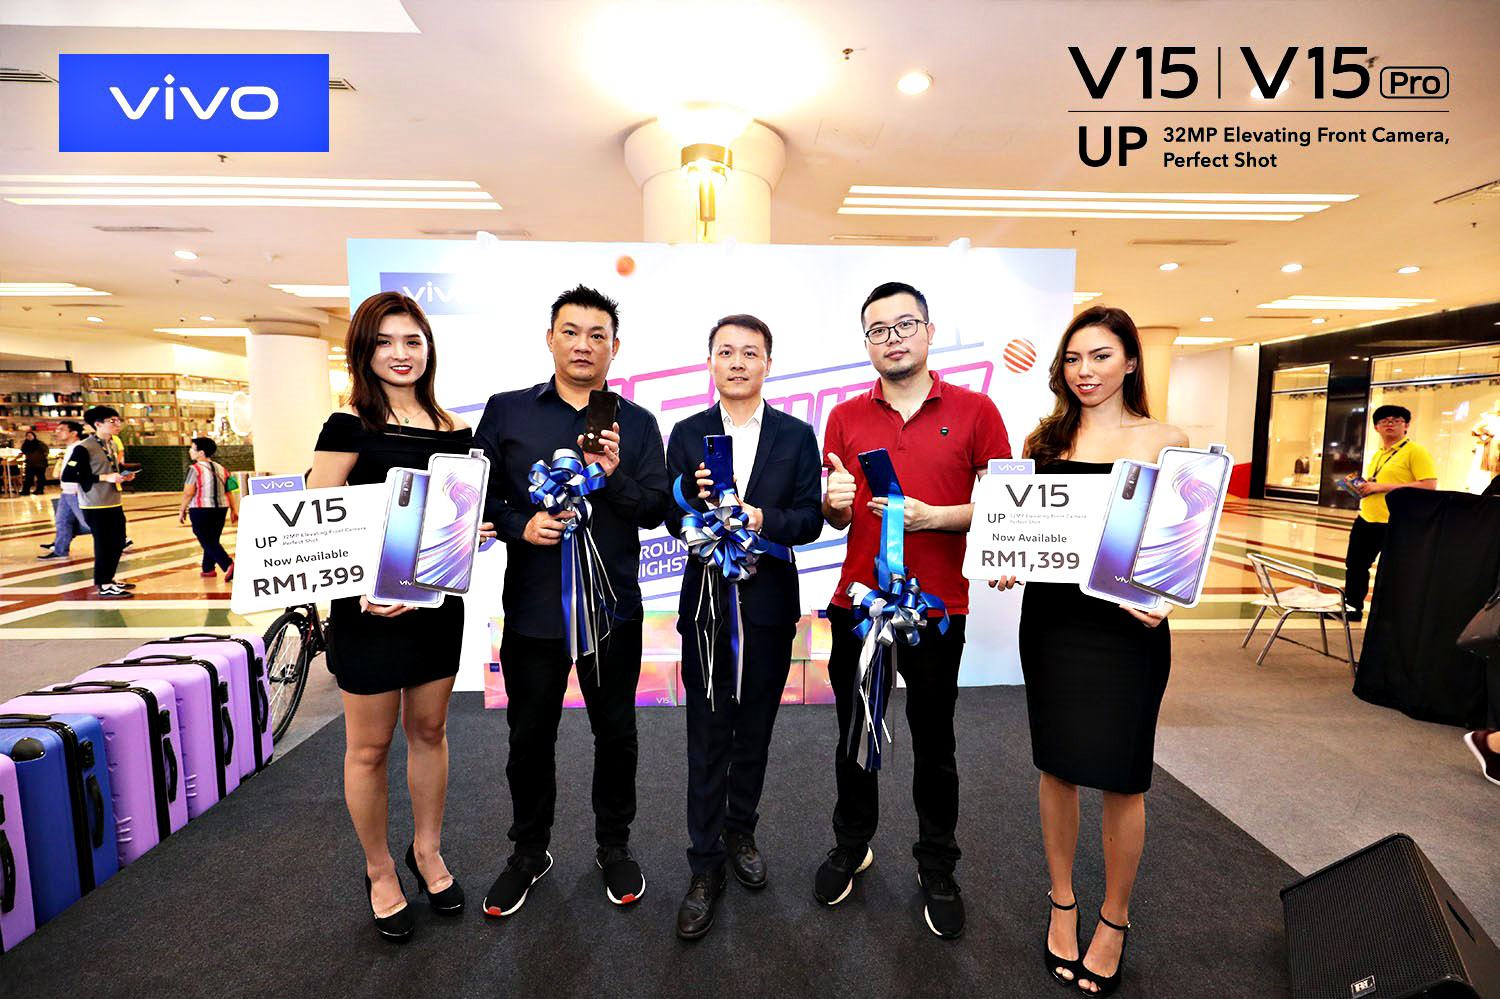 Vivo V15 Smartphone Officially Launched At Superday Sale